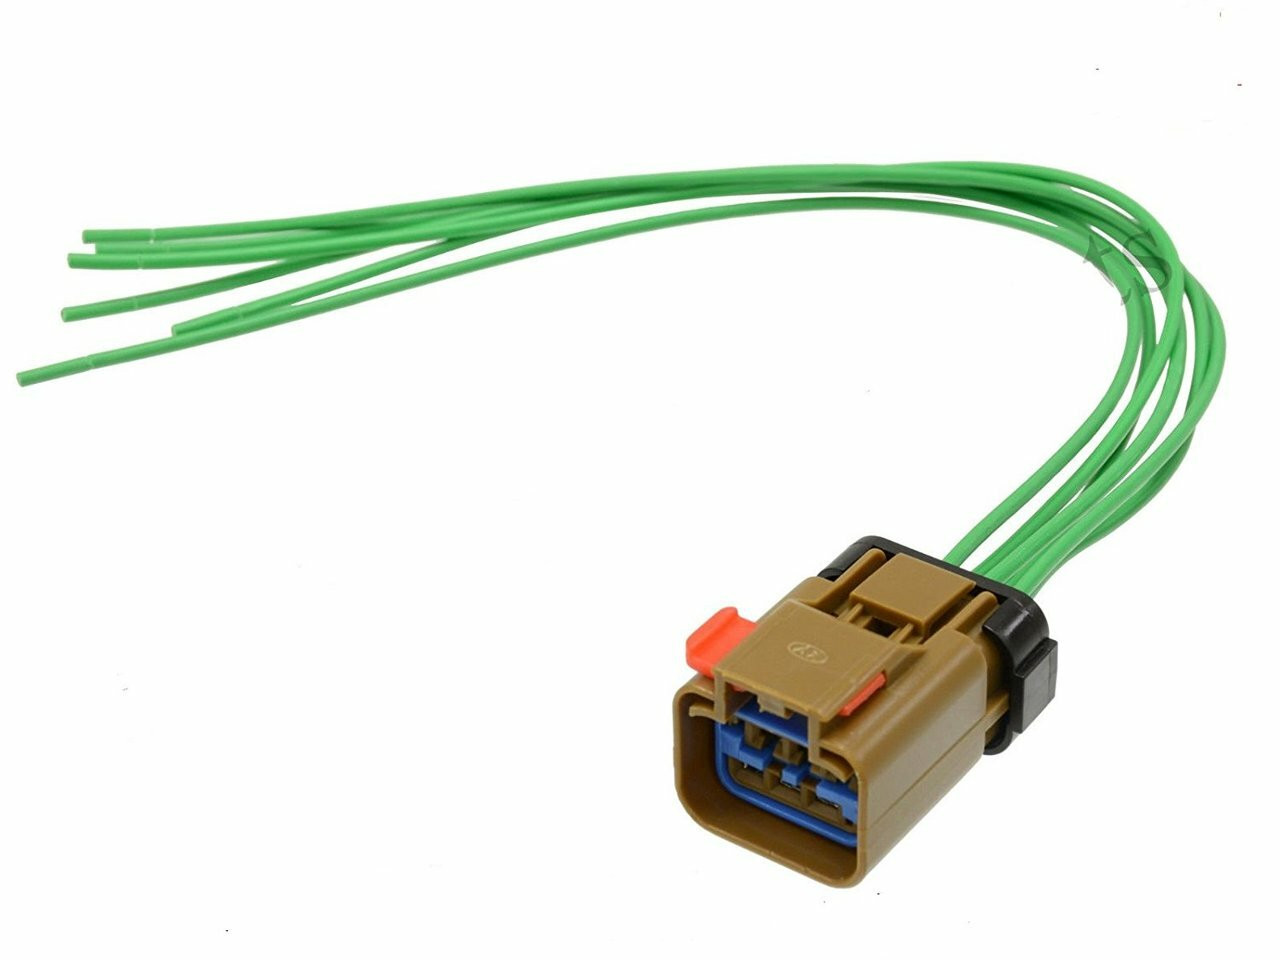 wiring harness pigtail connector kit repairs or replaces power window motor wiper motor tail lamp circuit  [ 1280 x 960 Pixel ]